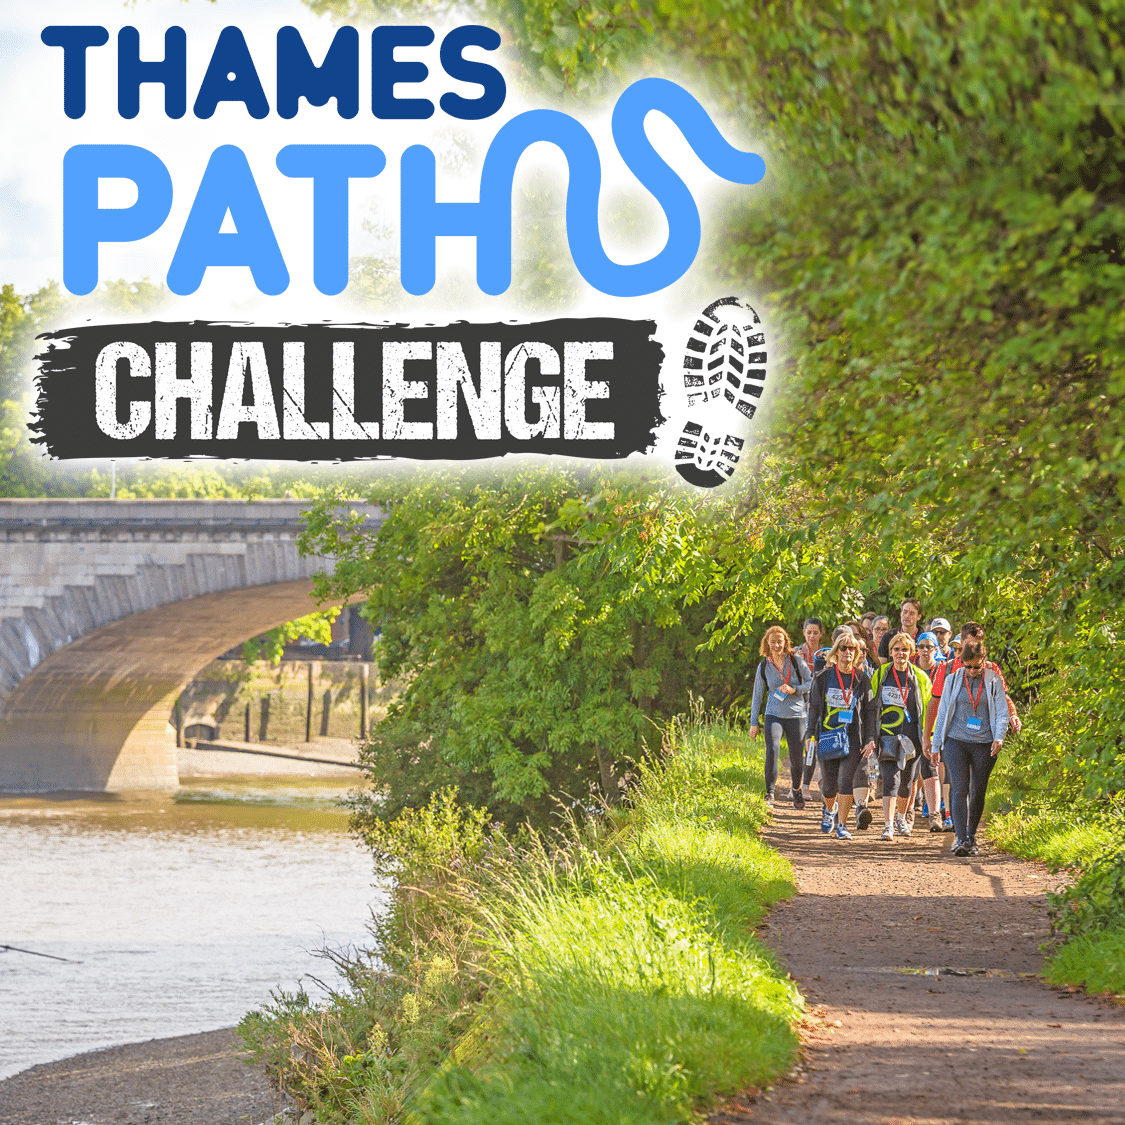 Image shows a group of walkers walking along a path with the Thames to the left and a hedgerow to the right. A bridge can be seen in the background. 'Thames Path Challenge' is written on the top left.